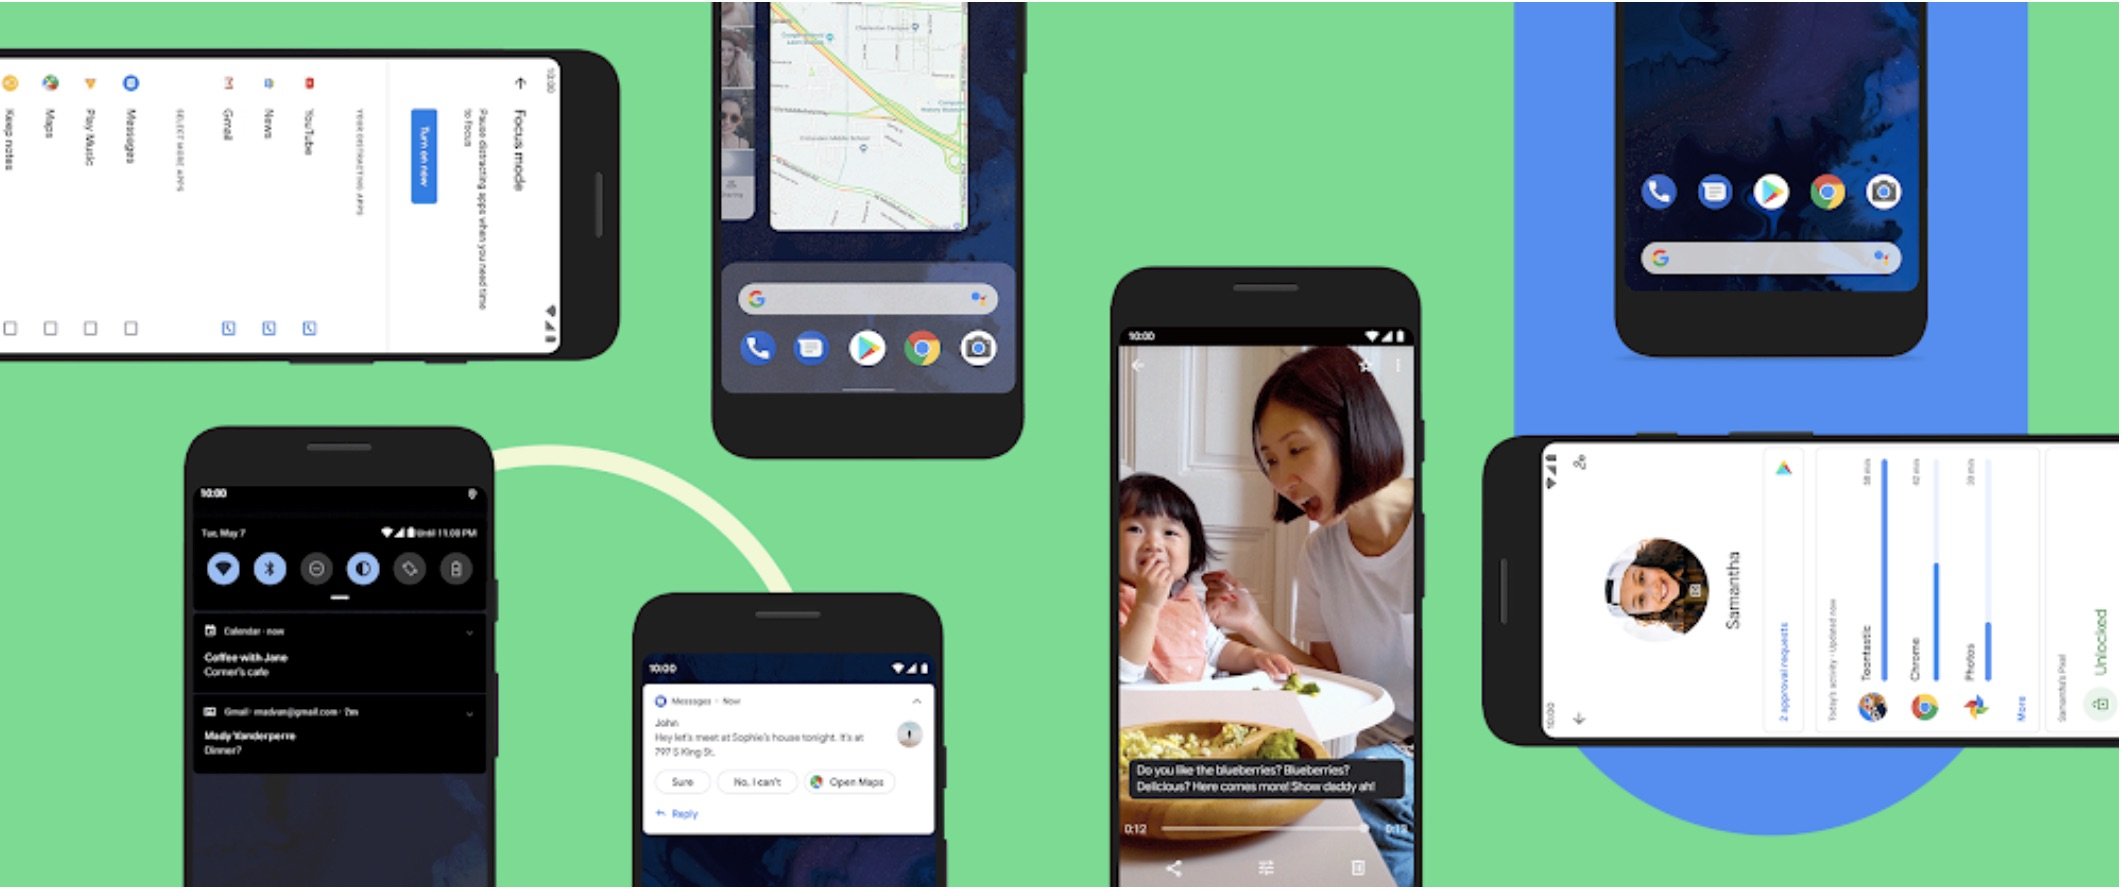 Google Officially Releases Android 10, Rolling Out Now to